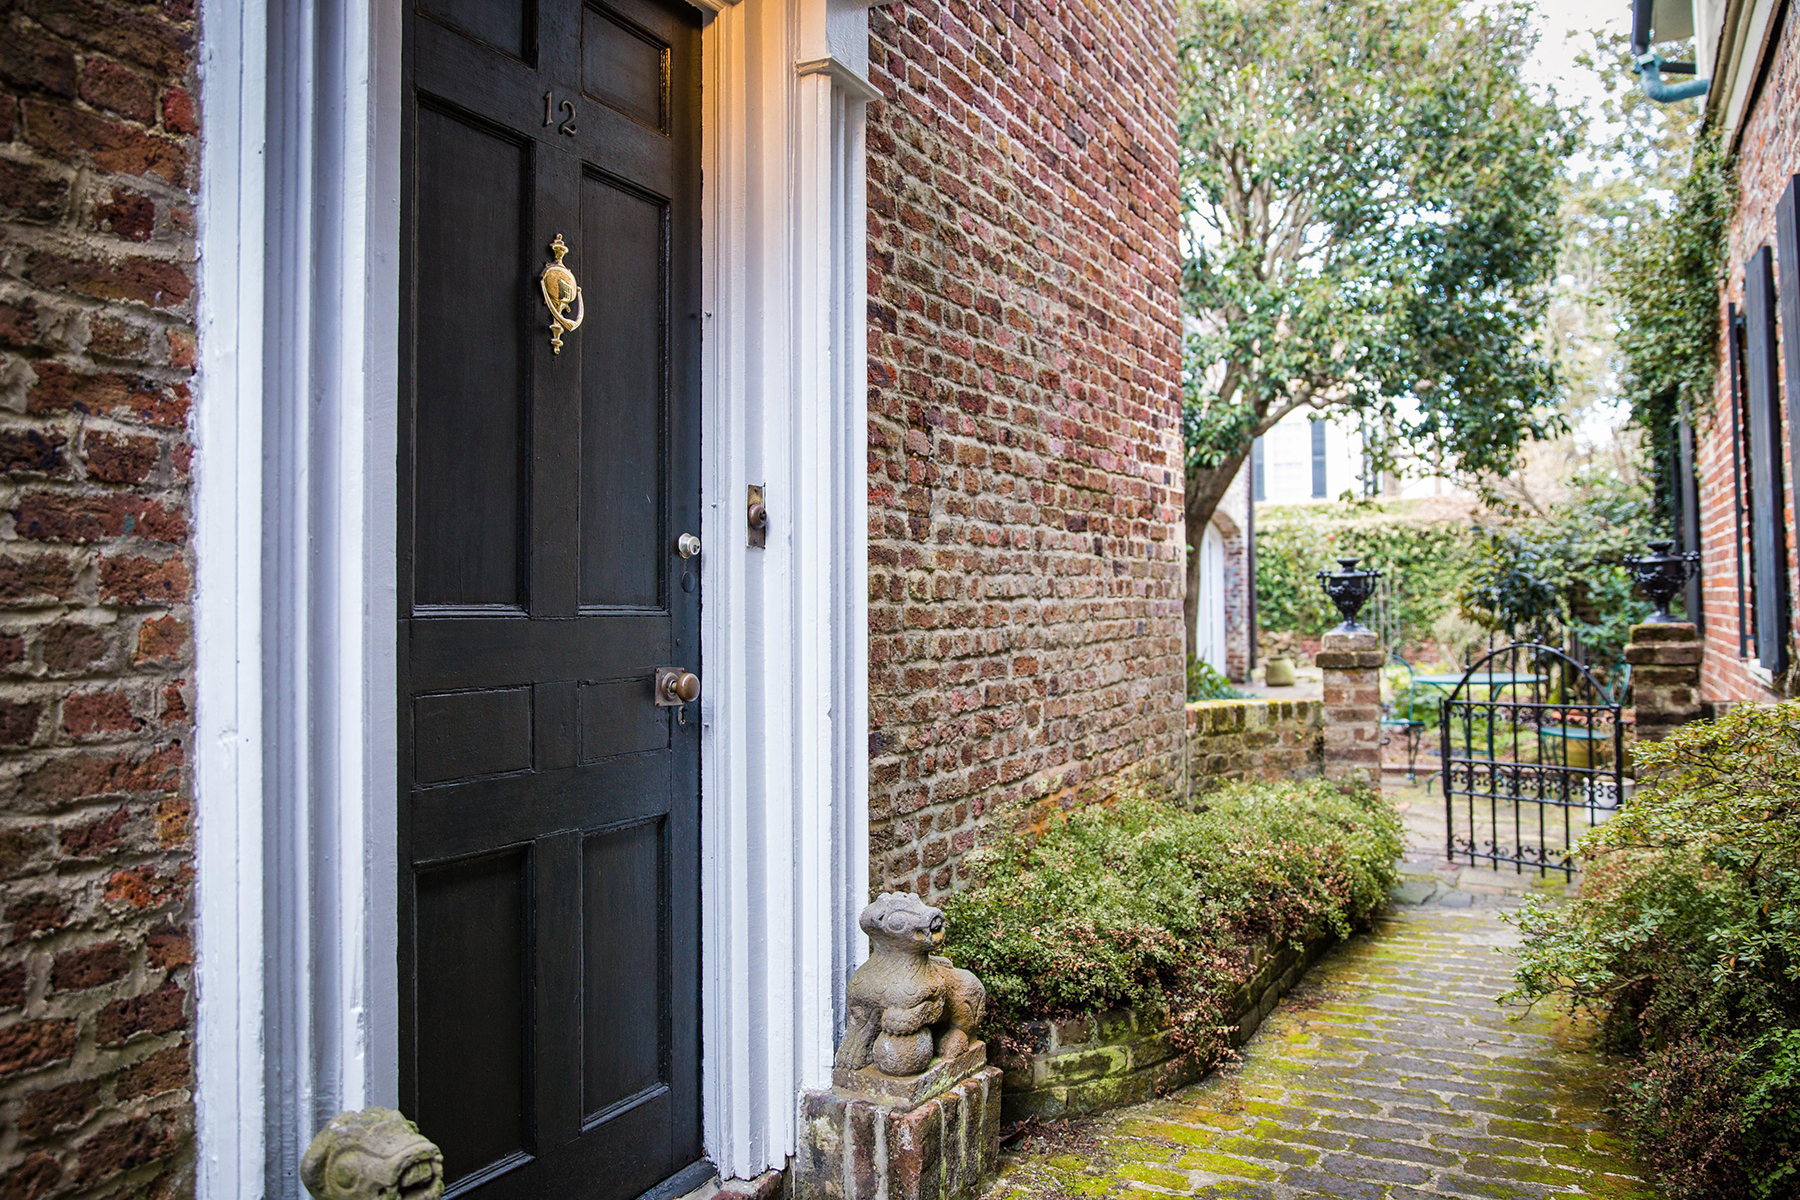 Single Family Home for Sale at 12 Tradd Street South Of Broad, Charleston, South Carolina, 29401 United States